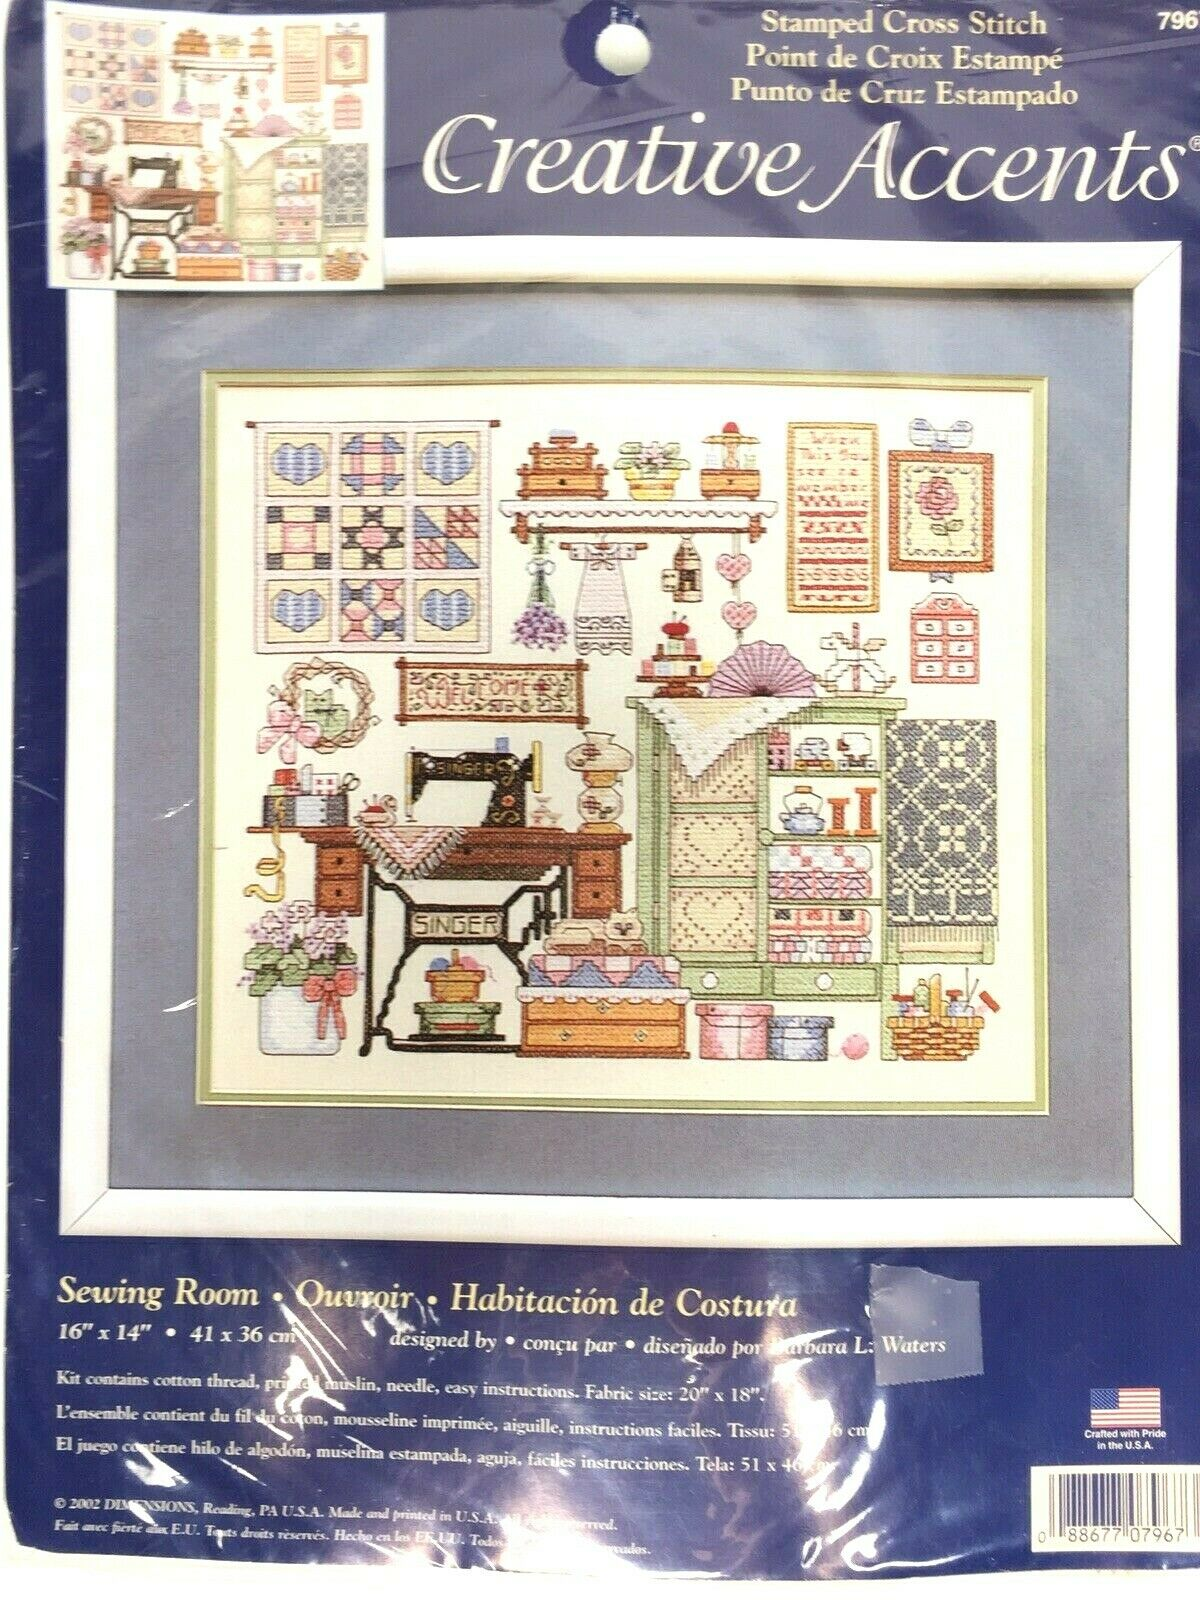 L Art Du Point De Croix new 2002 creative accents sewing room stamped cross stitch kit #7967  dimensions